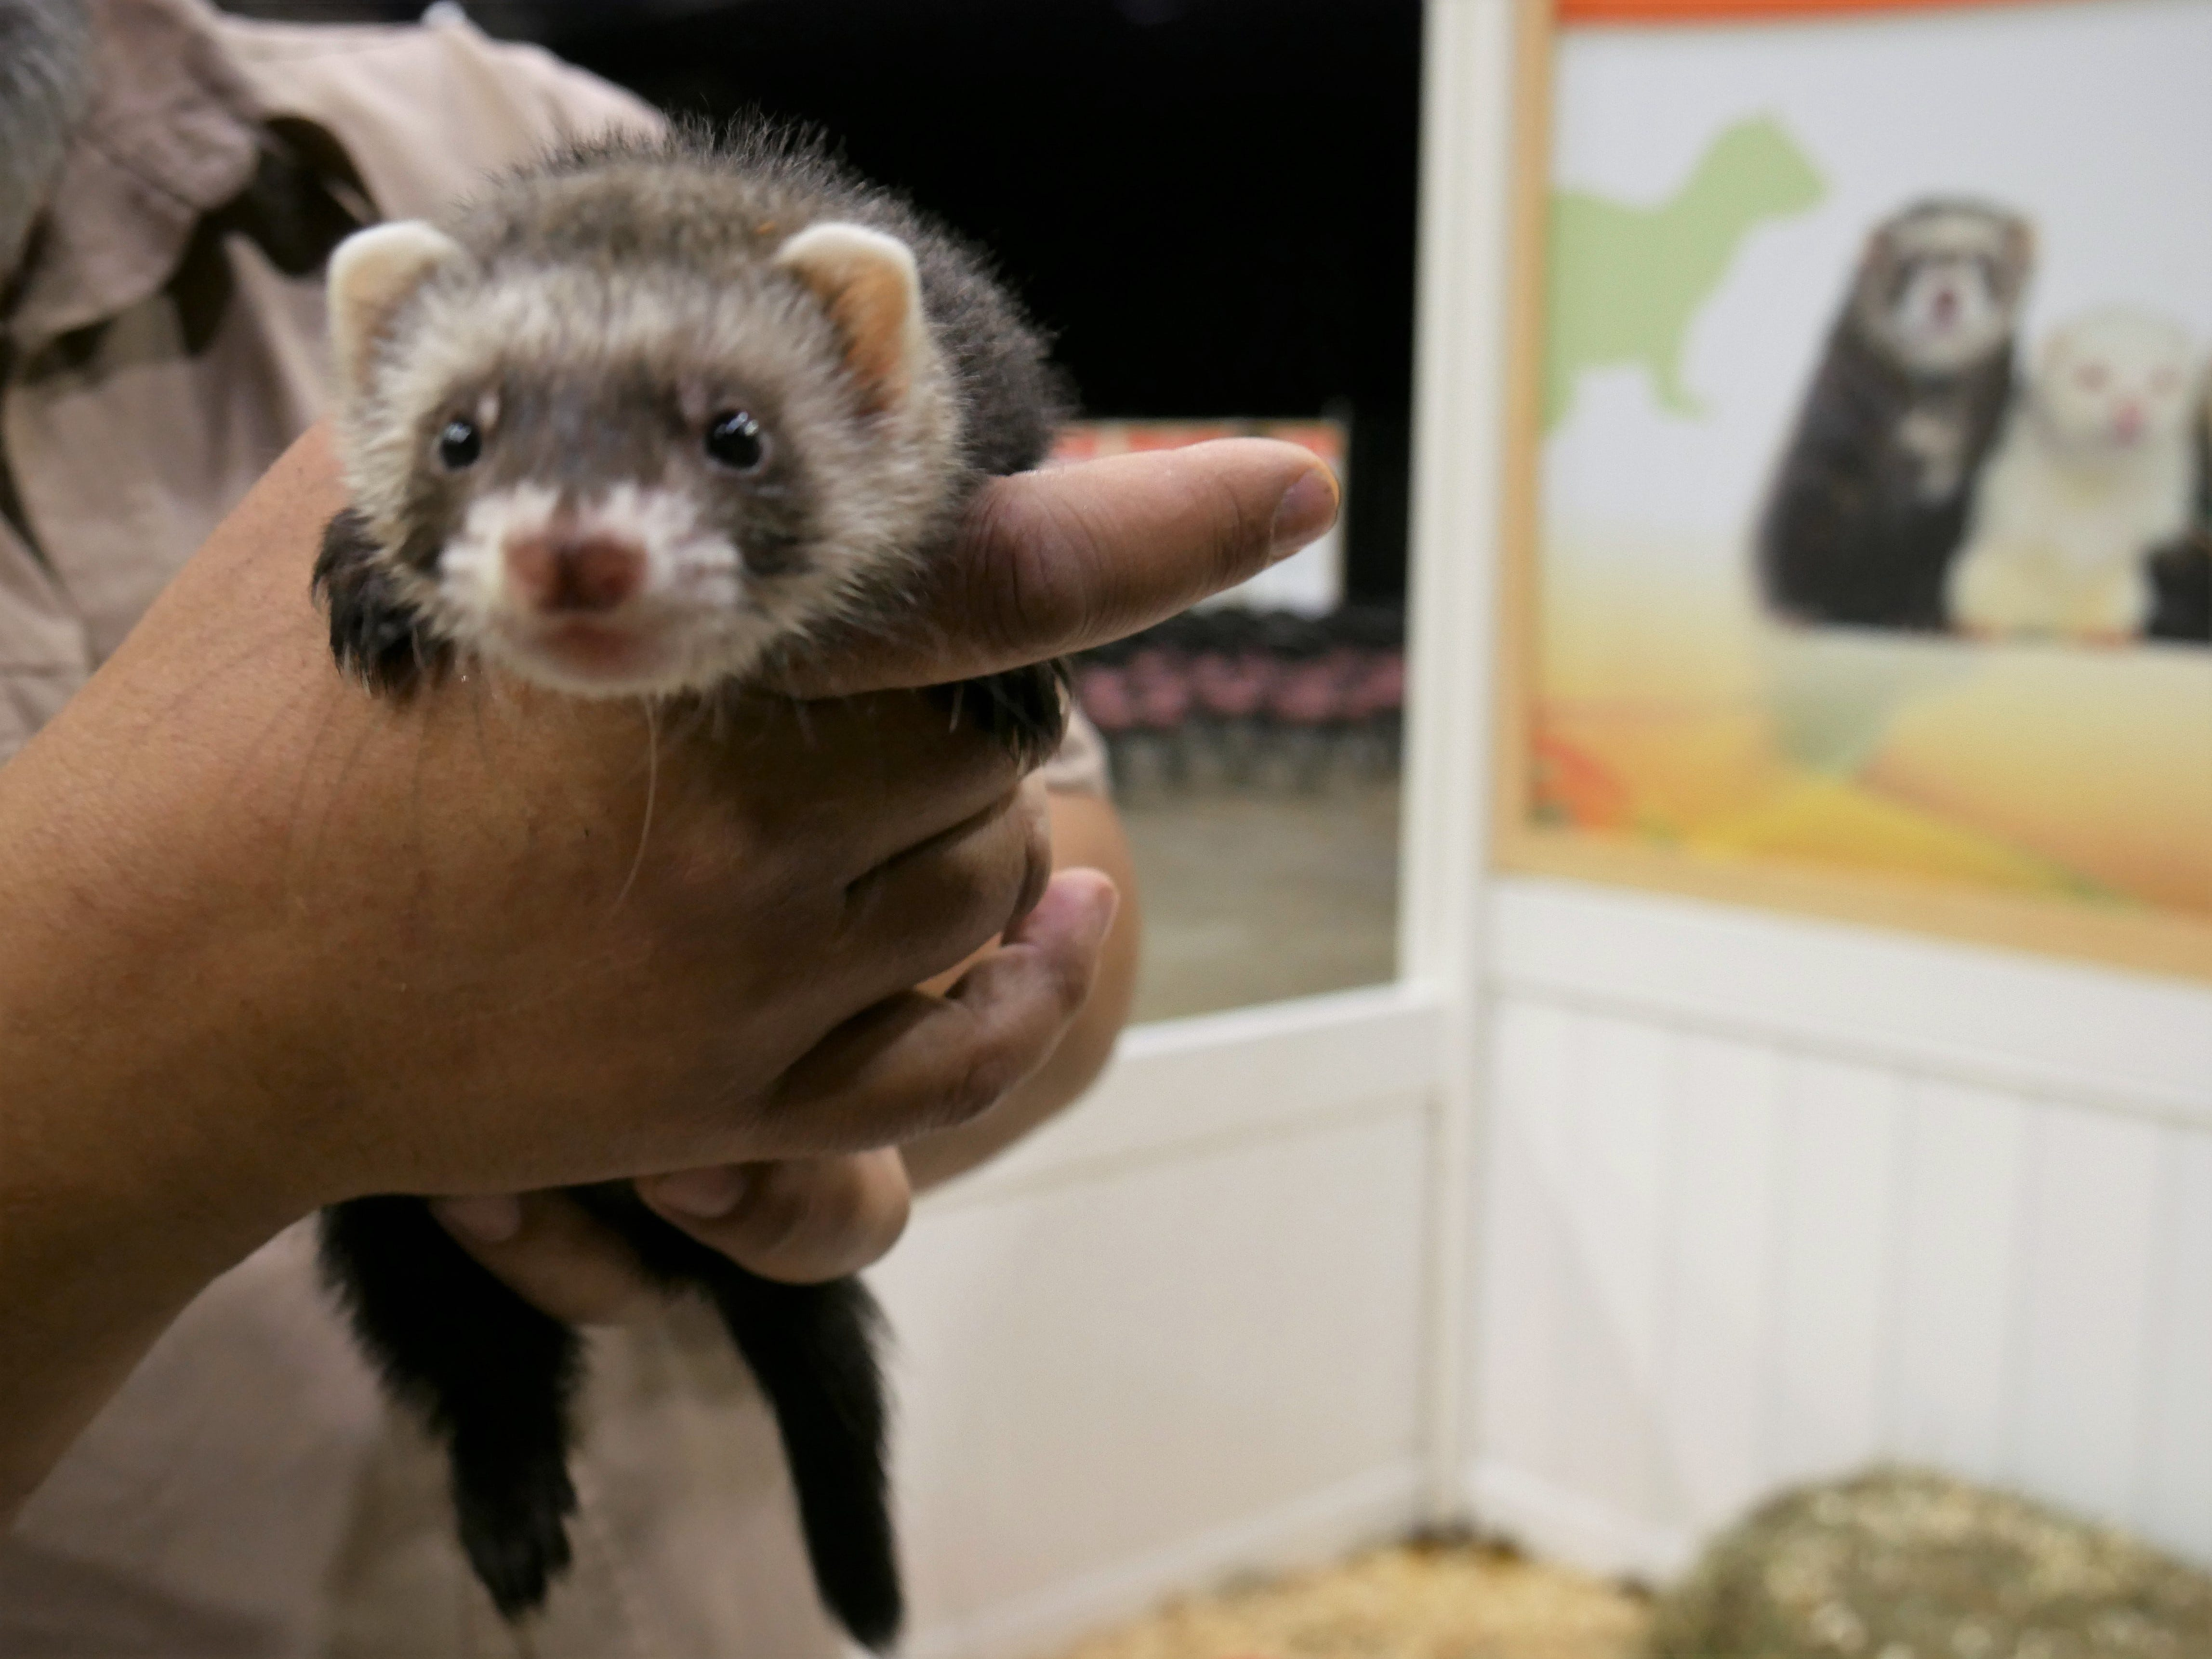 A ferret at the Natural History Exhibition on Nov. 17, 2018, at the Mid-Hudson Civic Center in Poughkeepsie. Little Ray's Nature Centers and ZooAmerica coordinated with the Foundation for Animal Rescue and Education for the weekend-long exhibit, which also features a sloth, a porcupine, an armadillo, rabbits, snakes, tarantulas and more.